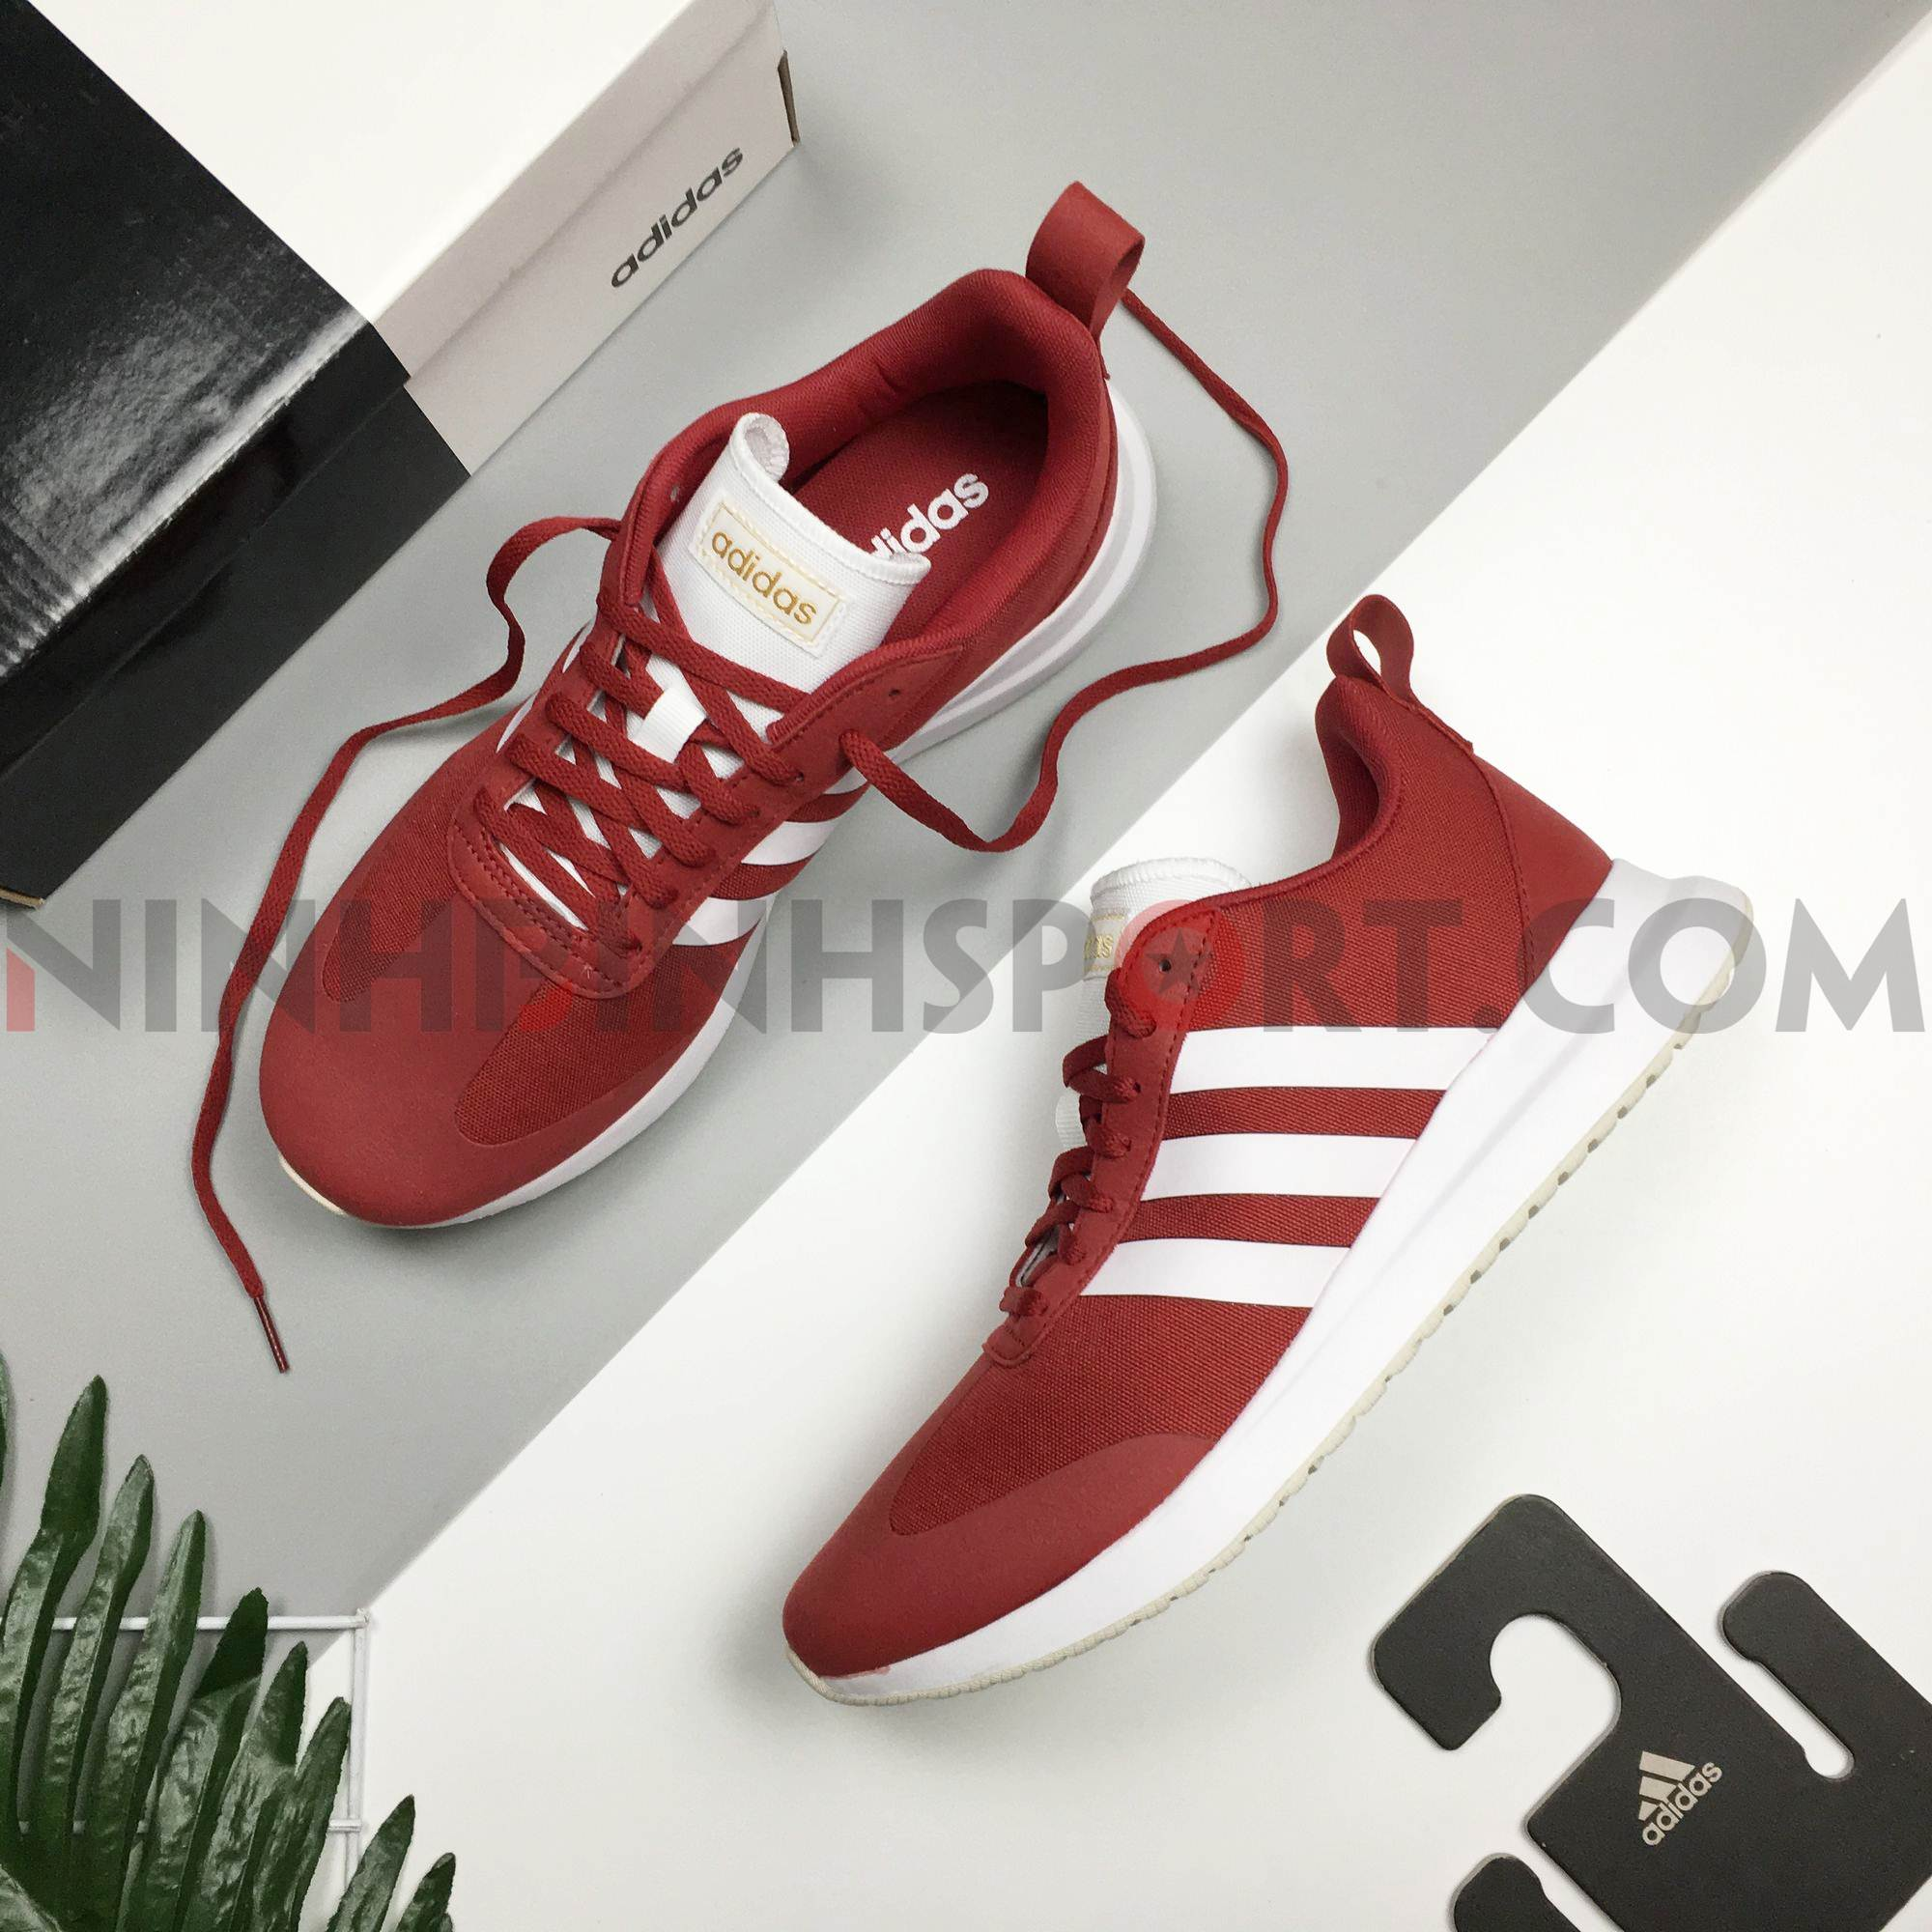 Giầy thể thao nam Adidas Run 60s Red EE9729